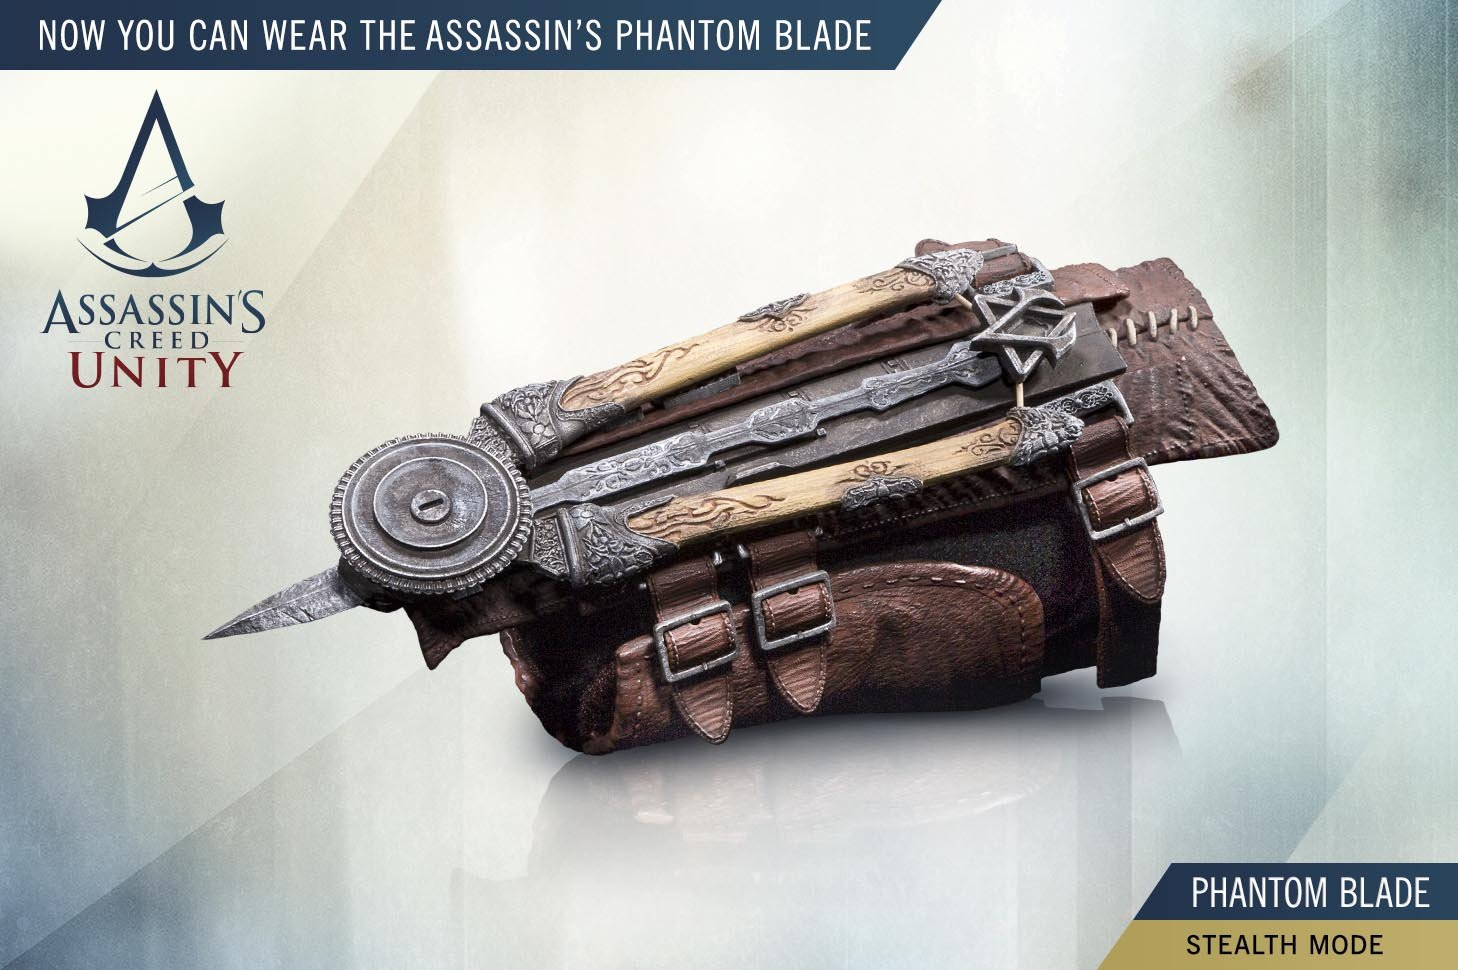 Assassin s creed unity review next available slot assassin s creed - Assassin S Creed Unity Review Next Available Slot Assassin S Creed 34